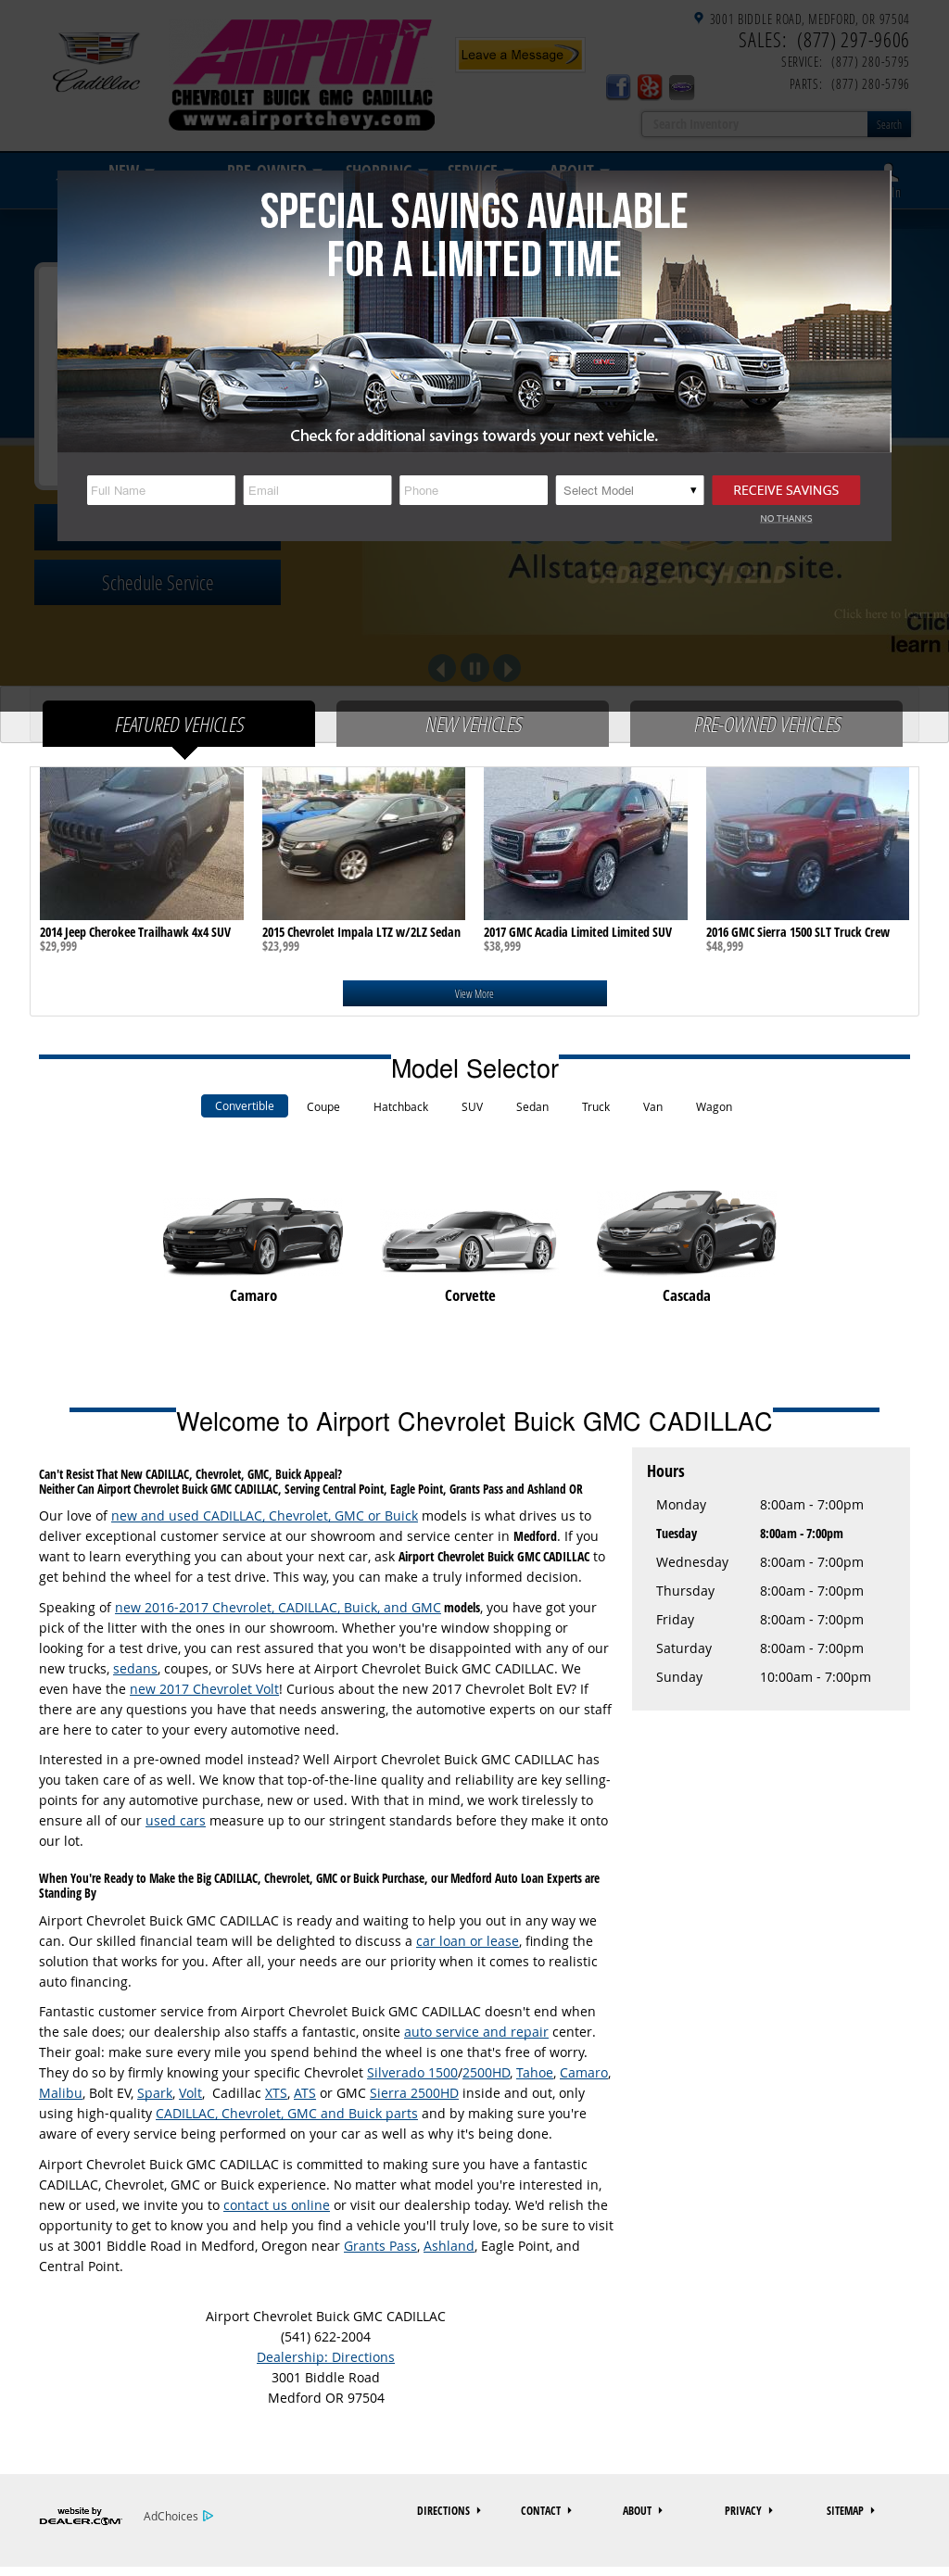 Airport Chevrolet Buick Gmc Cadillac Website History